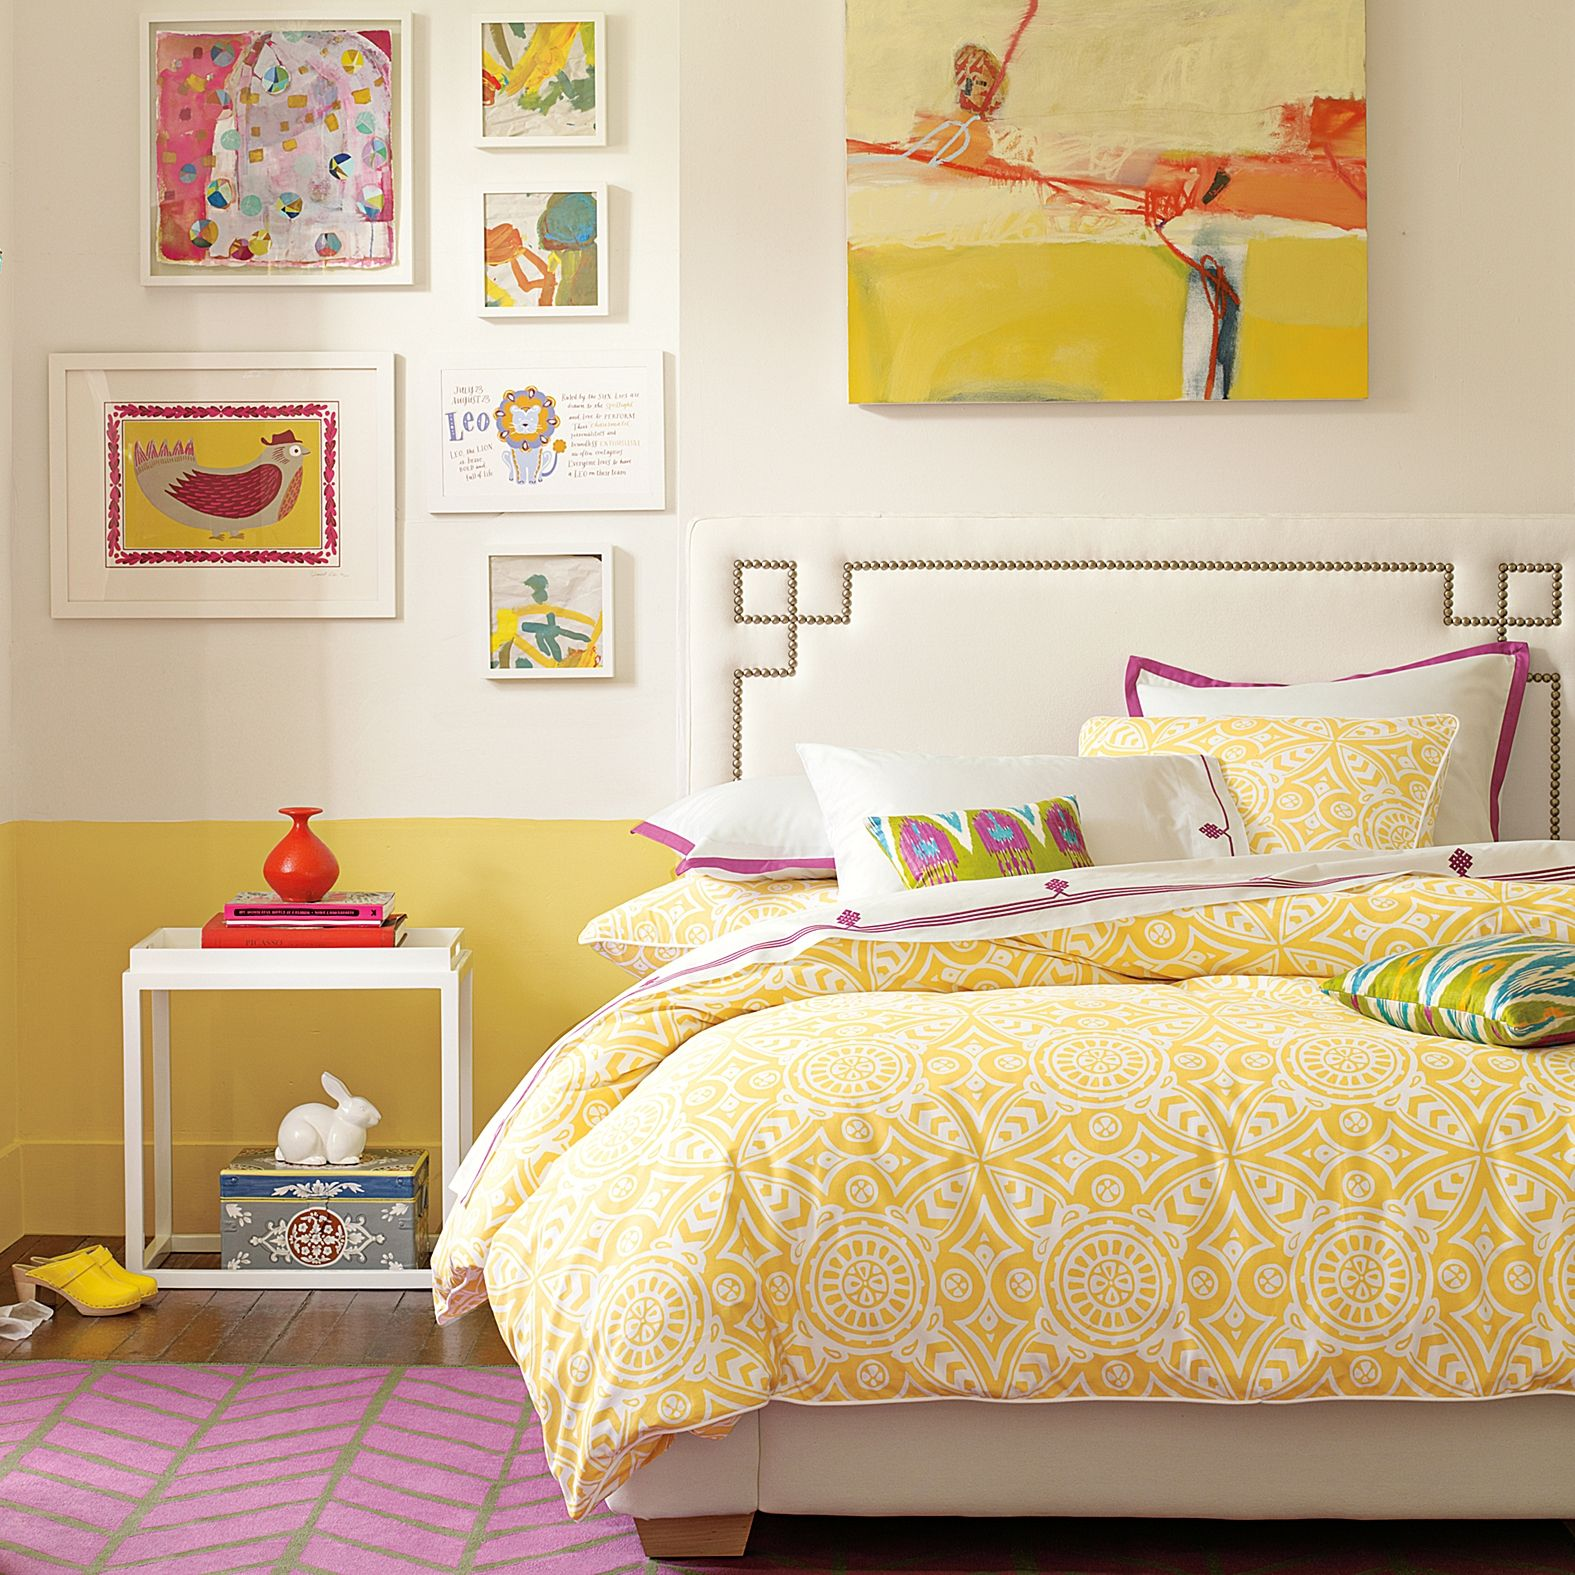 yellow + magenta | Color | Pinterest | Bedrooms, Bright and Sunnies